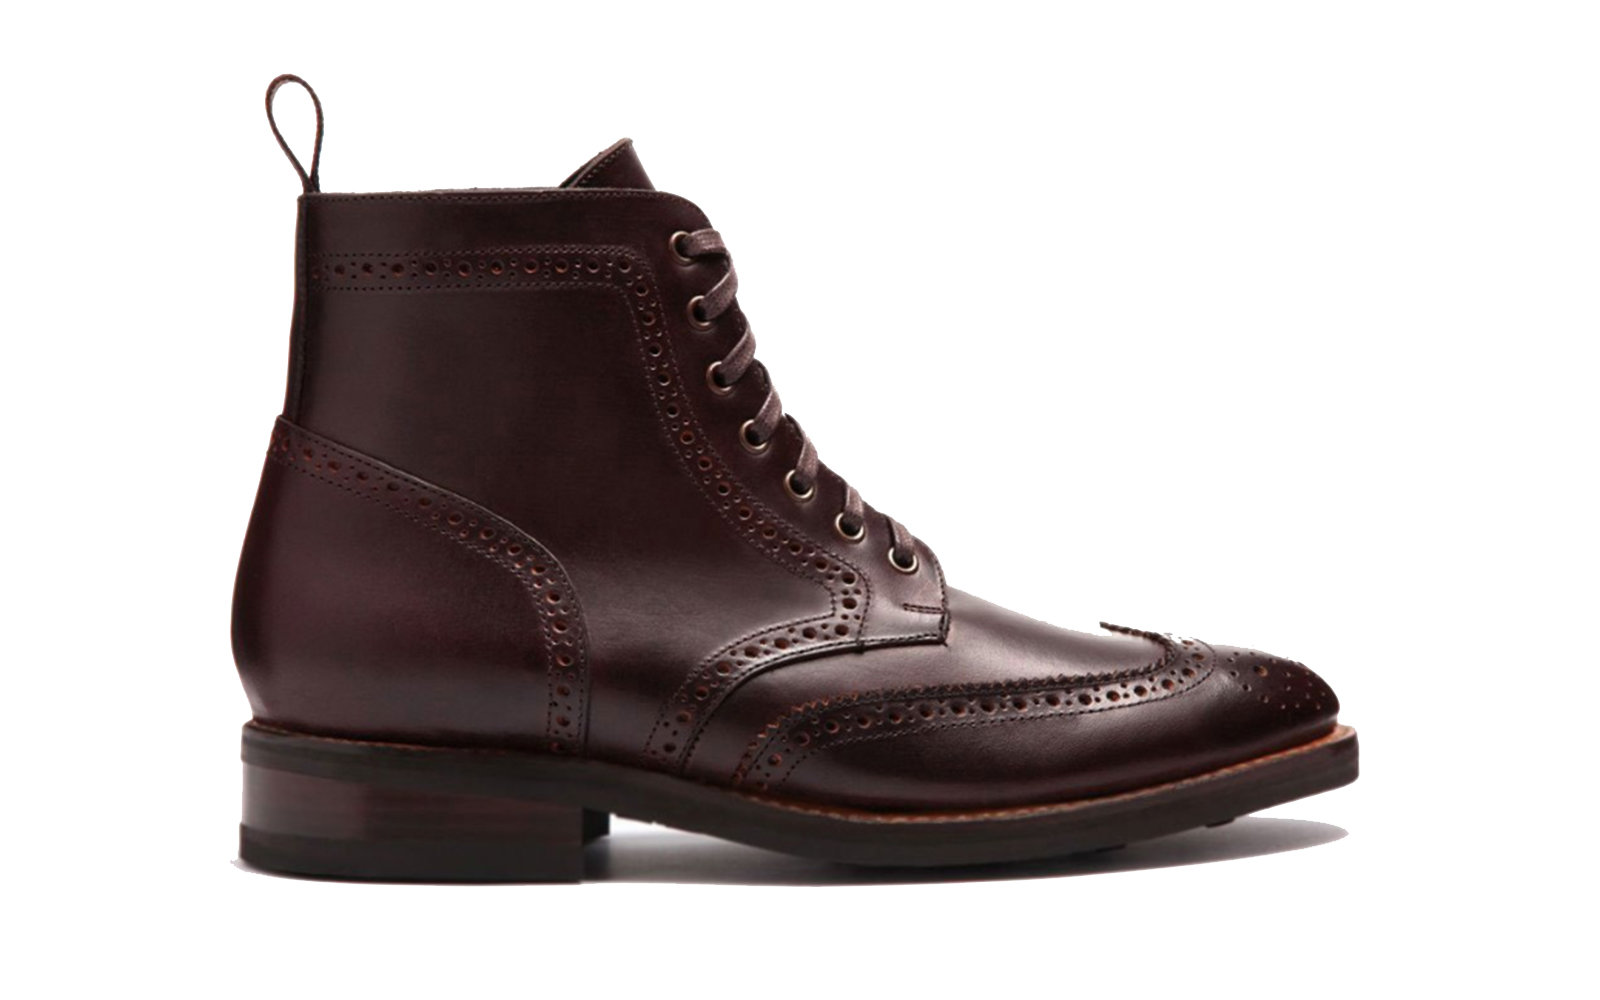 Best Dress Boots: Thursday Boots Co. Wingtip